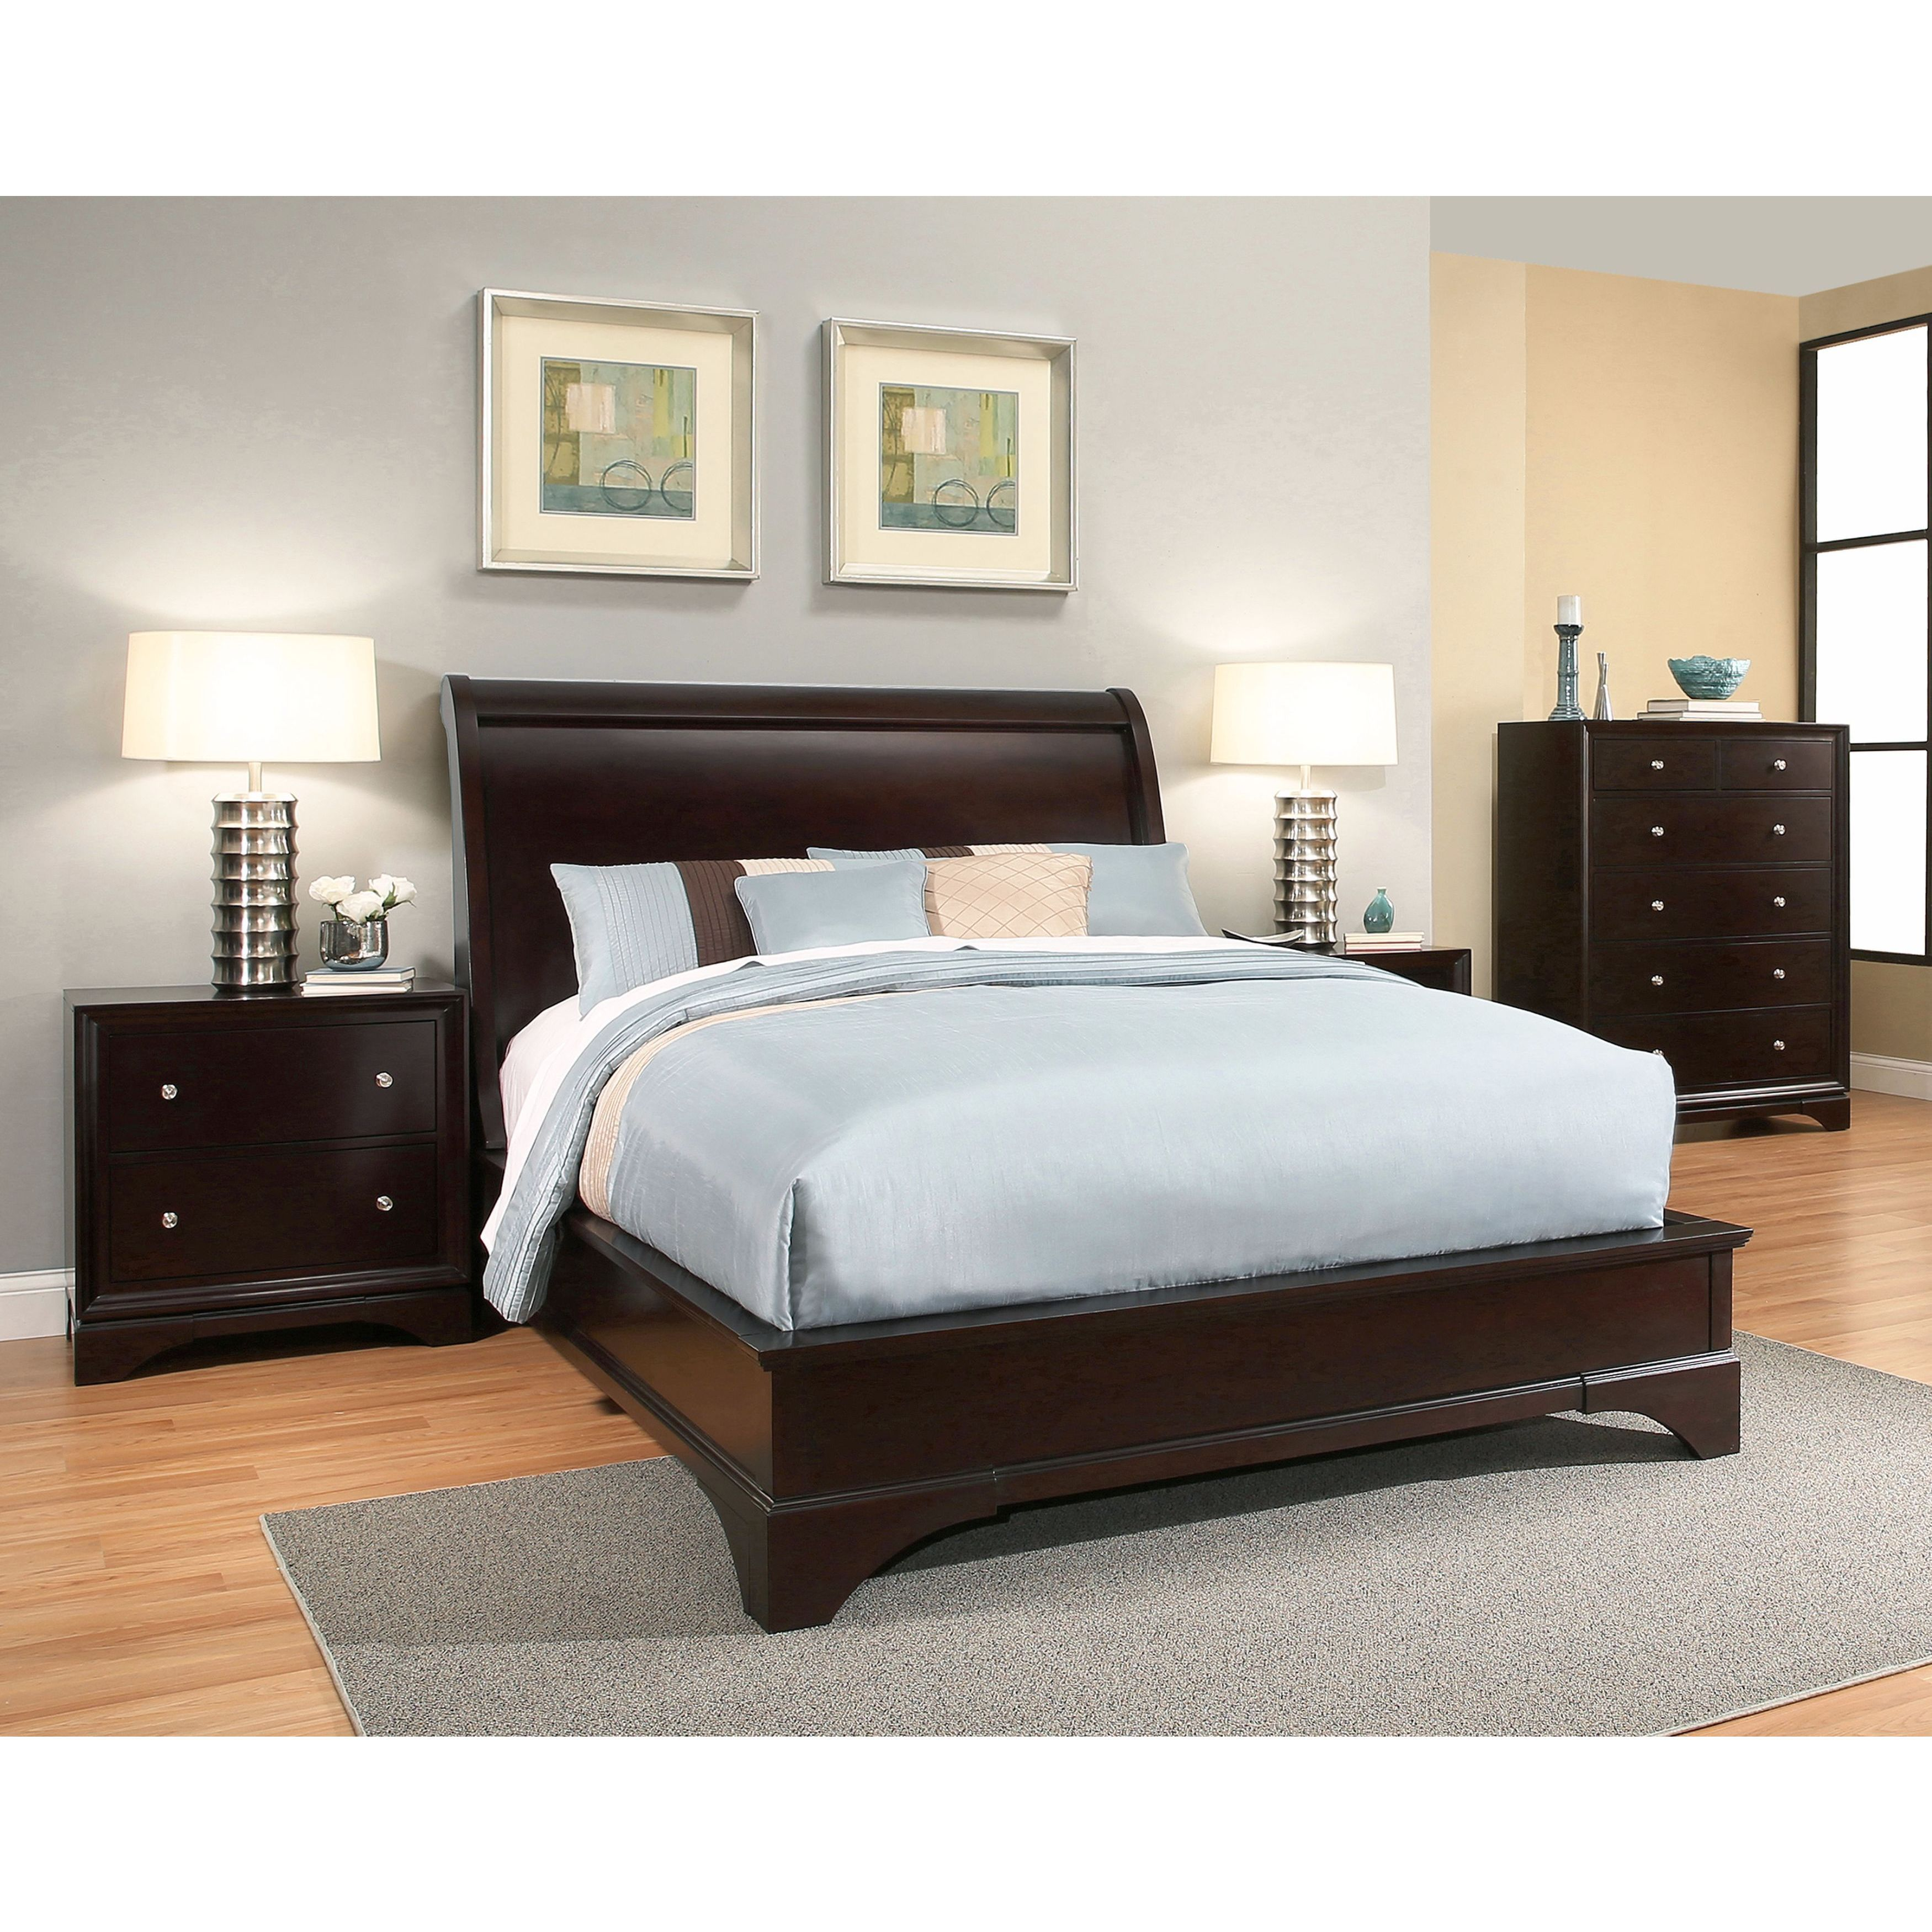 Espresso Bedroom Sets: Abbyson Sydney Espresso Finish Wood Bed In 2019